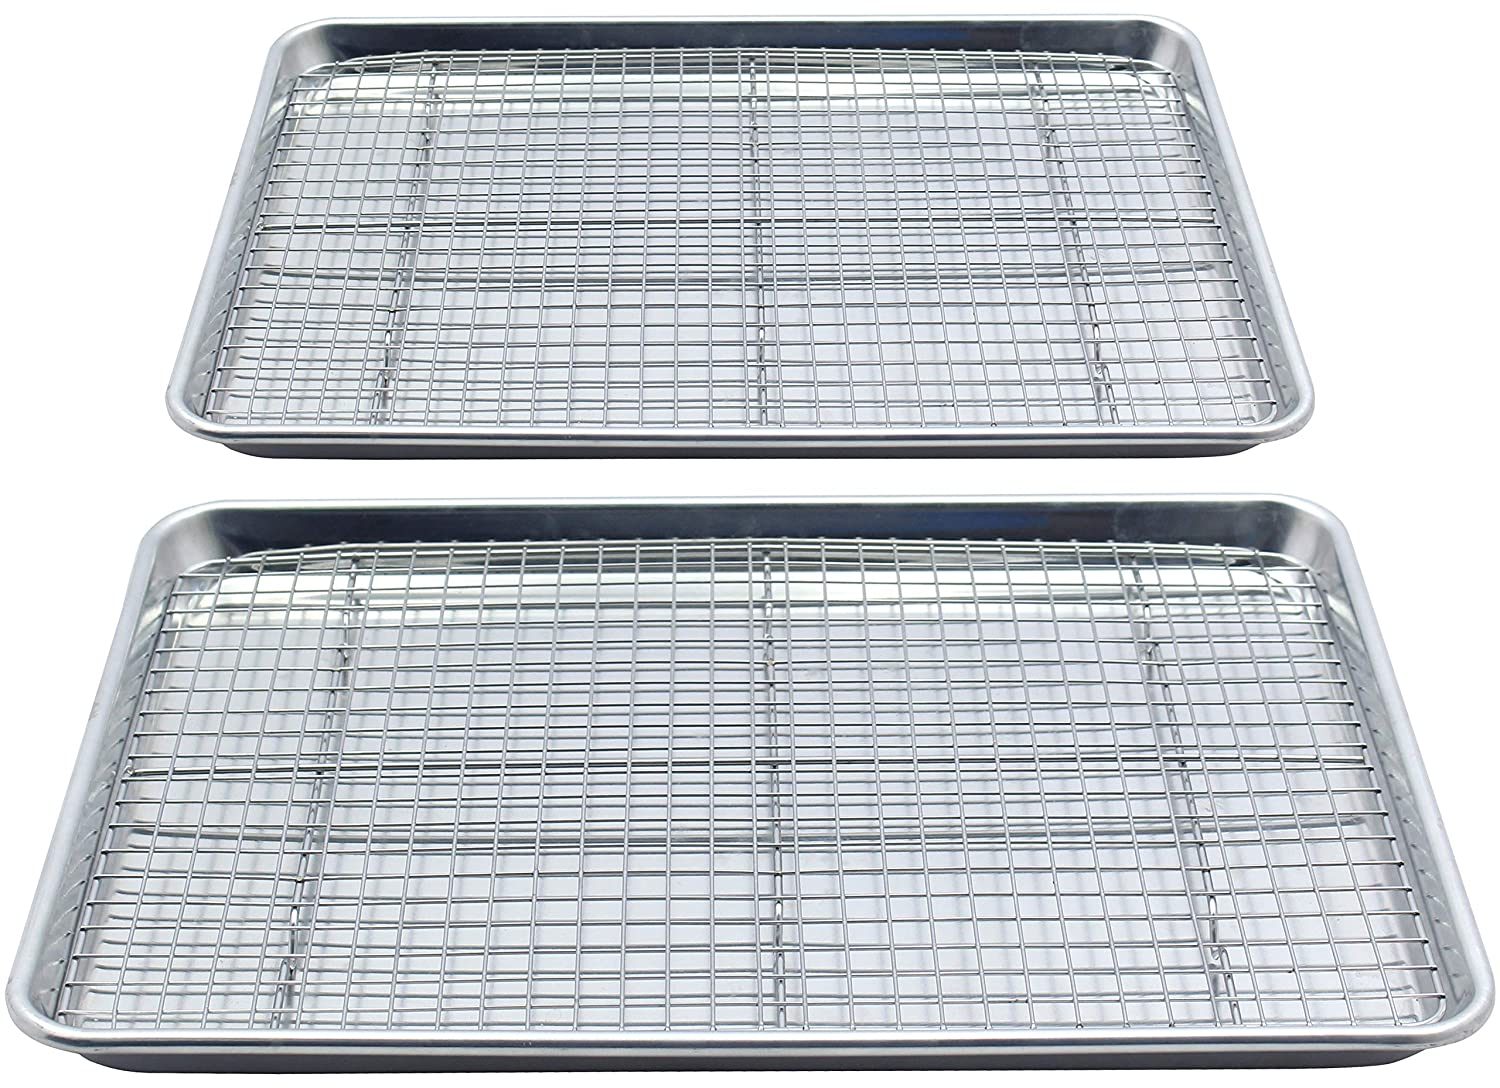 Checkered Chef Baking Sheet and Rack Set - Twin Pack- 2 Aluminum Cookie Sheets/Half Sheet Pans With 2 Stainless Steel Oven Safe Cooling Racks